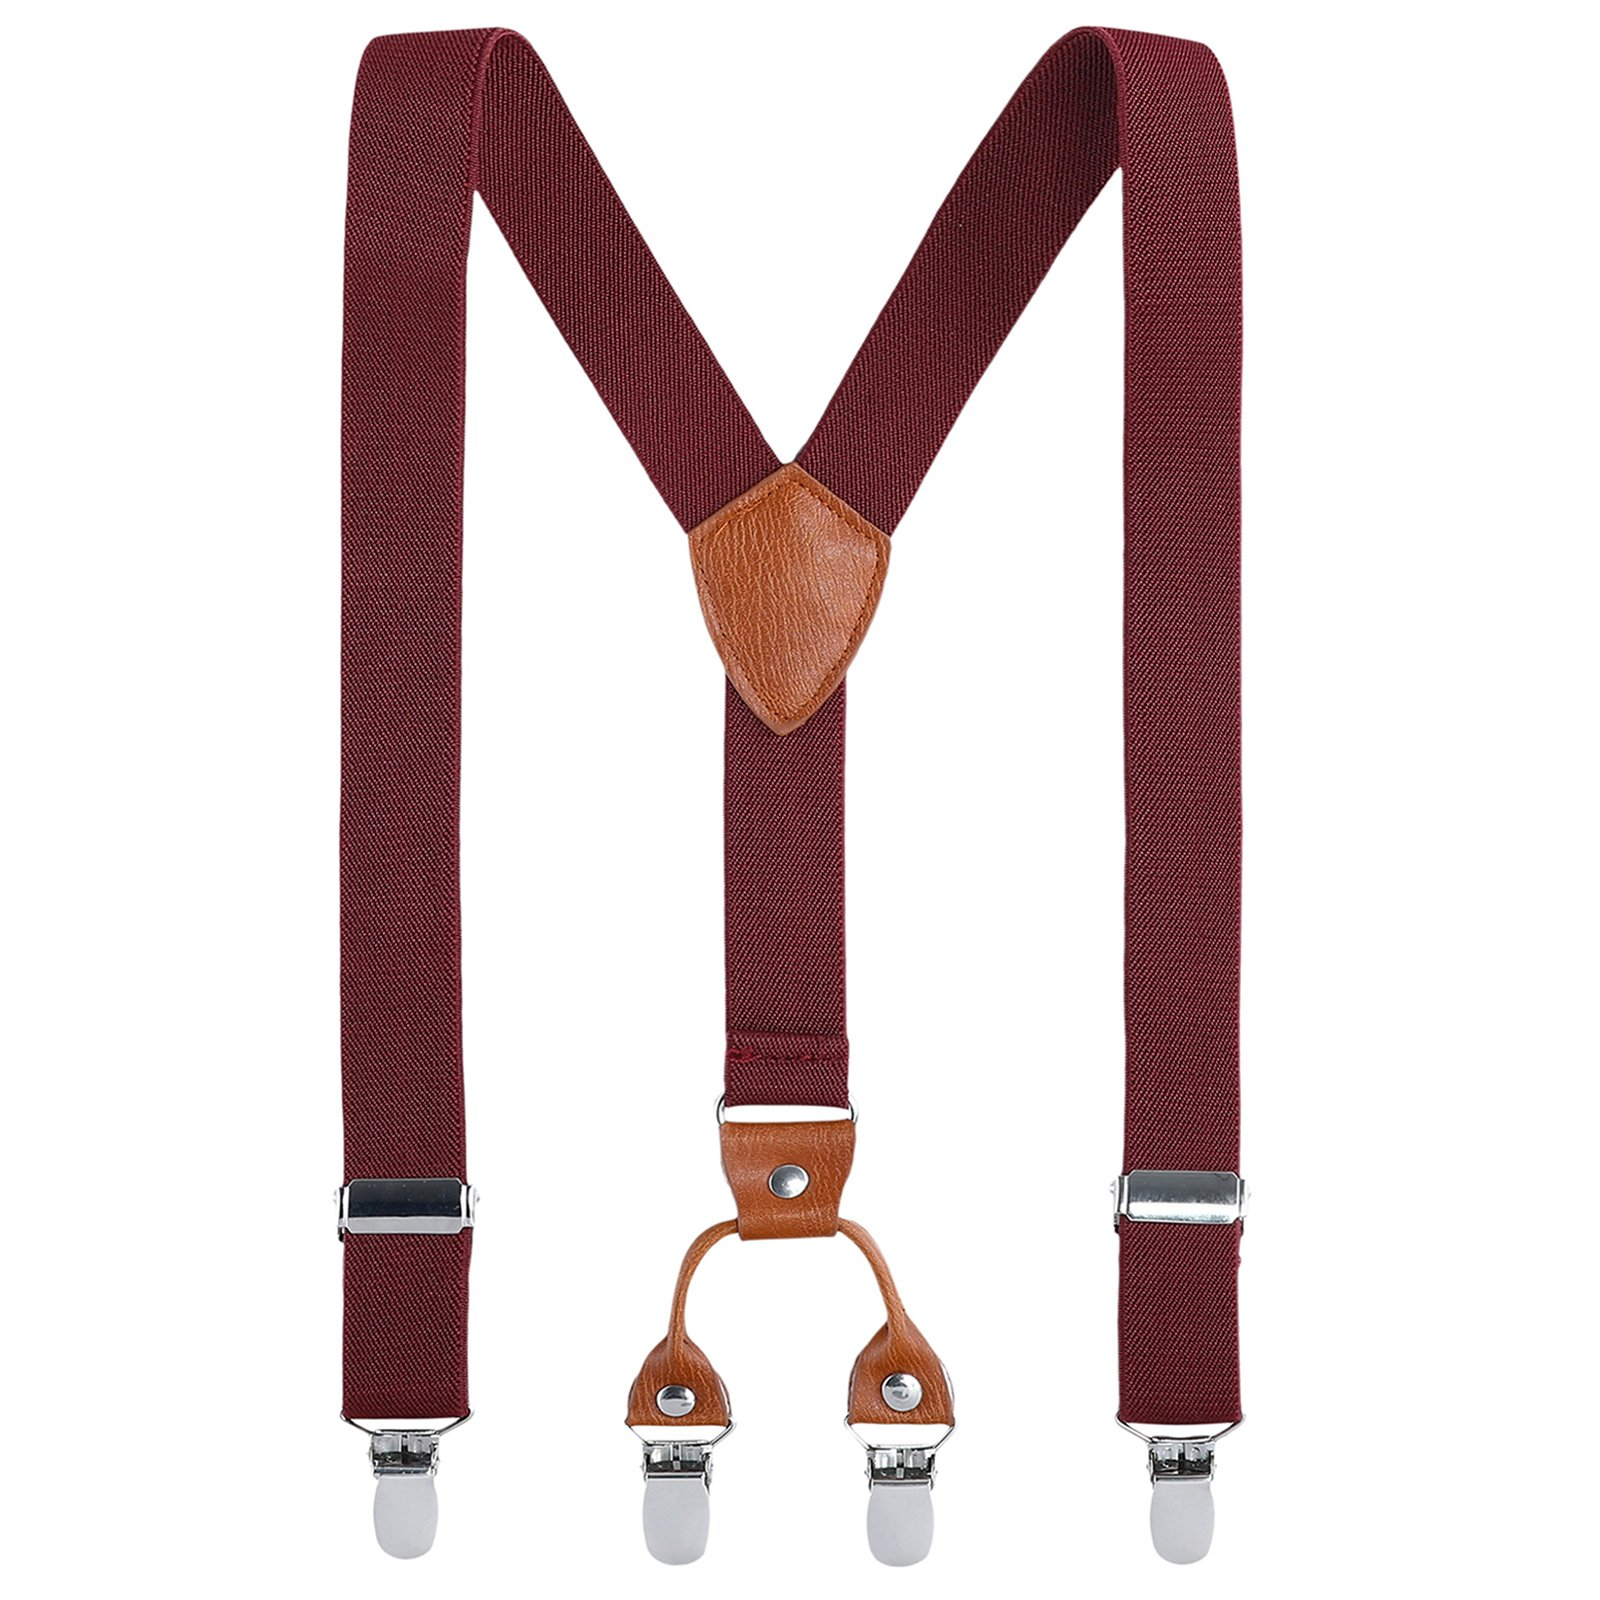 Kids Child Men Boy Suspenders - Adjustable Elastic Solid Color 4 Strong Clips Braces(43Inches (Adult Size), Burgundy)